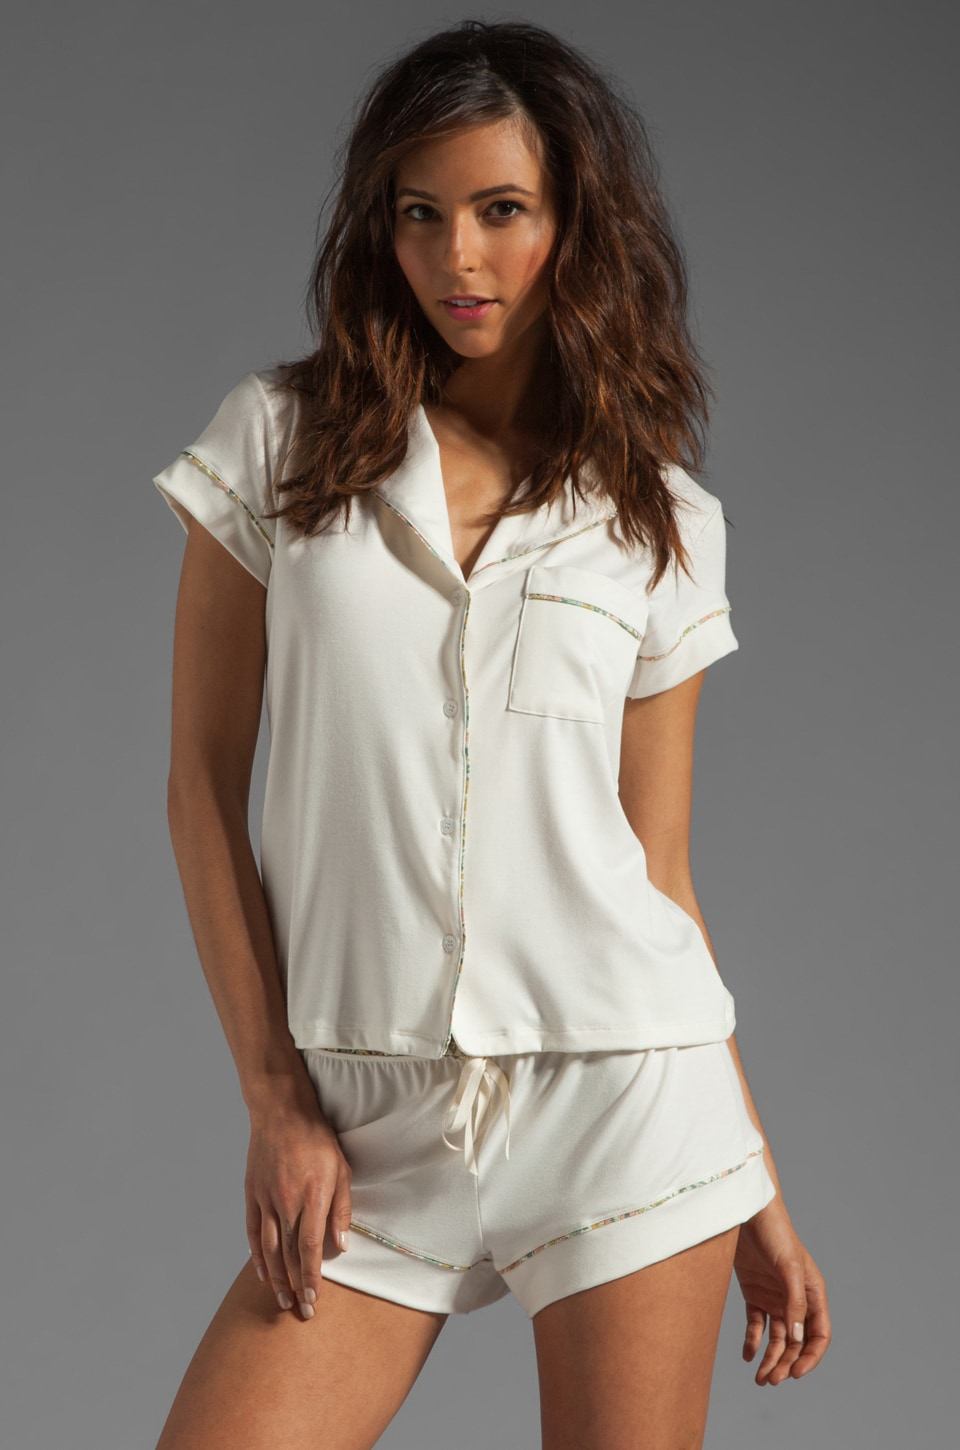 eberjey Miss Liberty Short PJ Top in Ivory/Lemon